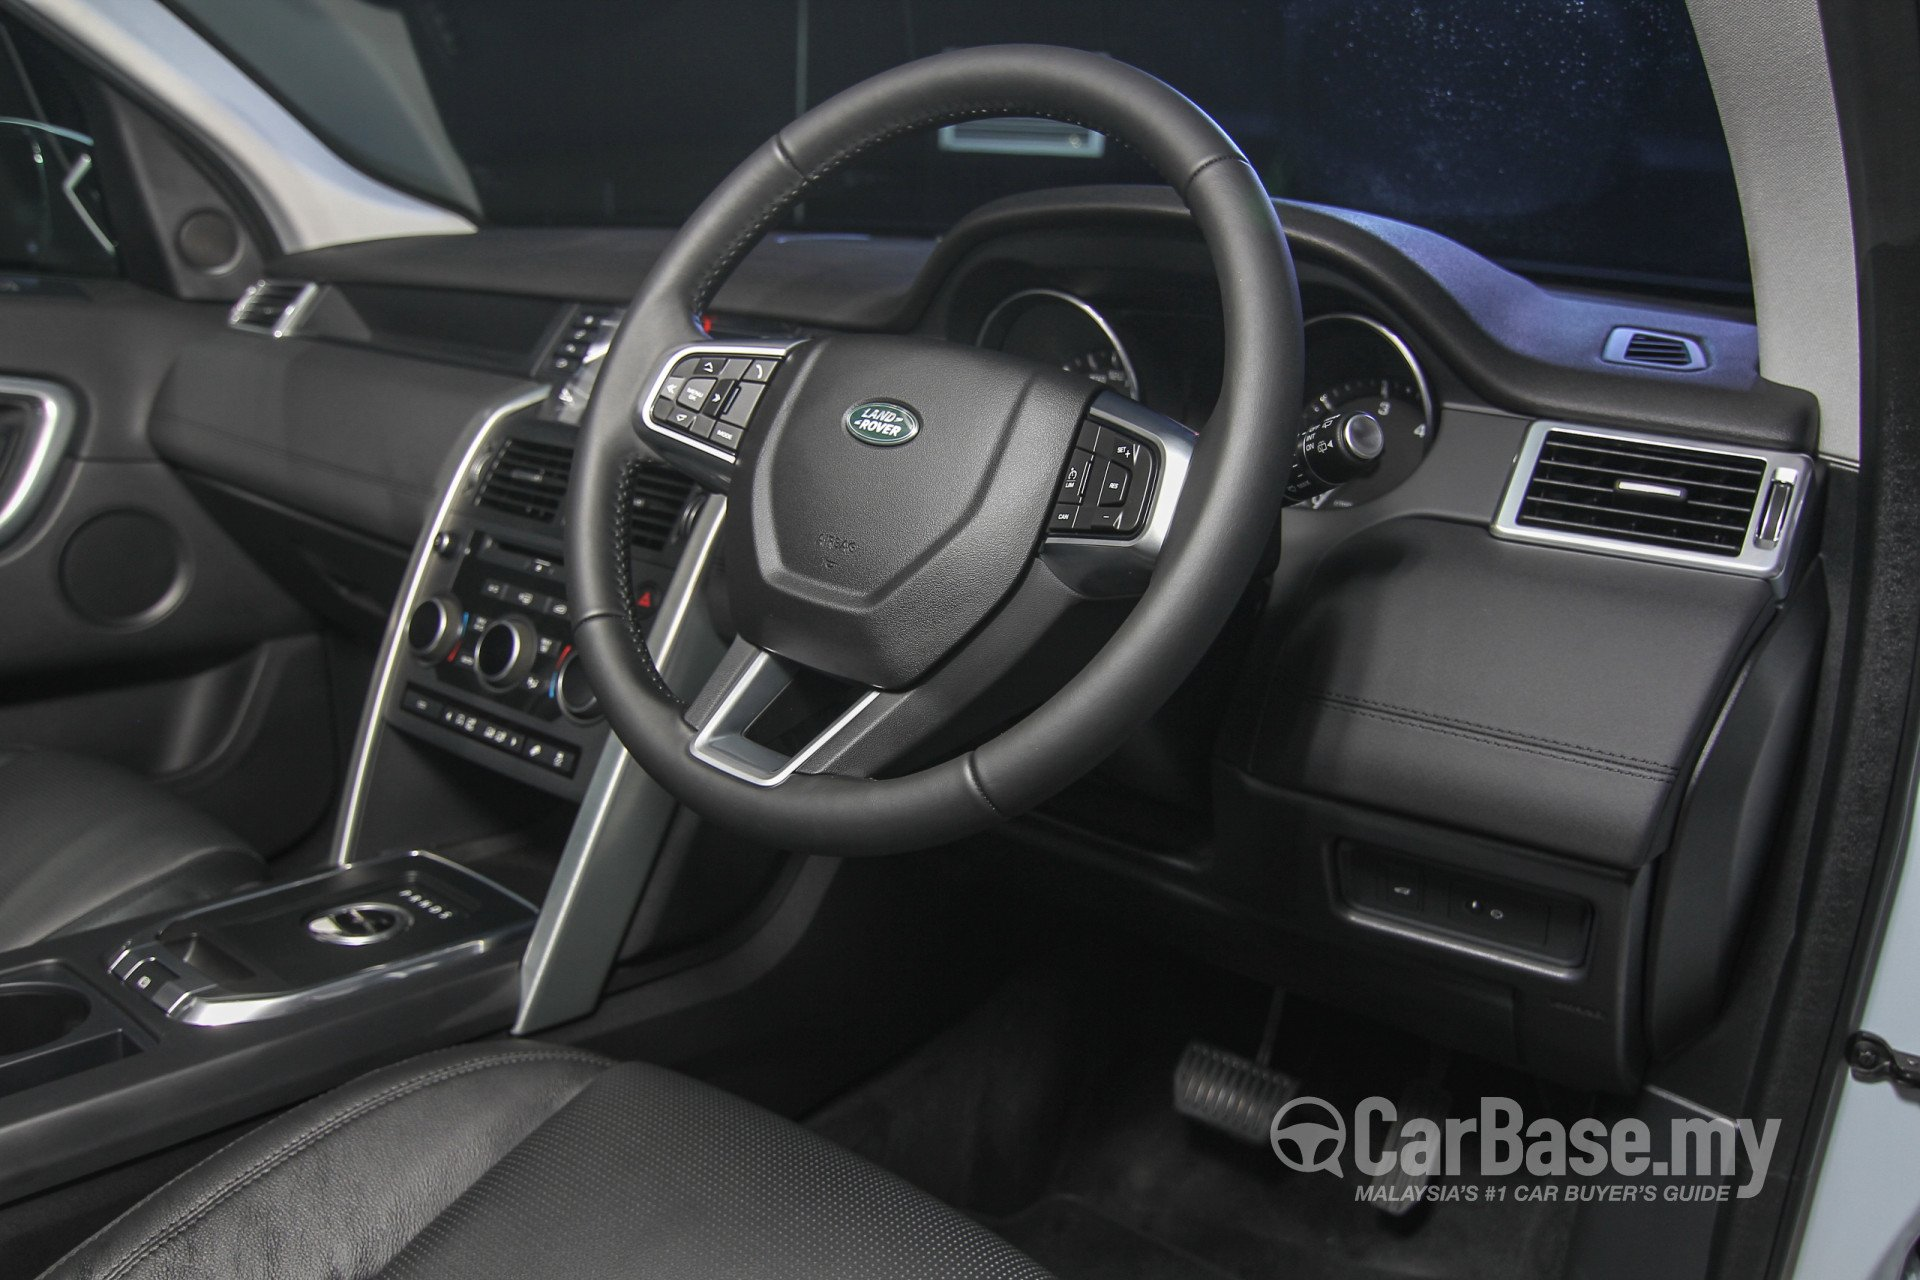 Land rover discovery sport l550 2015 interior image in - Land rover discovery interior dimensions ...